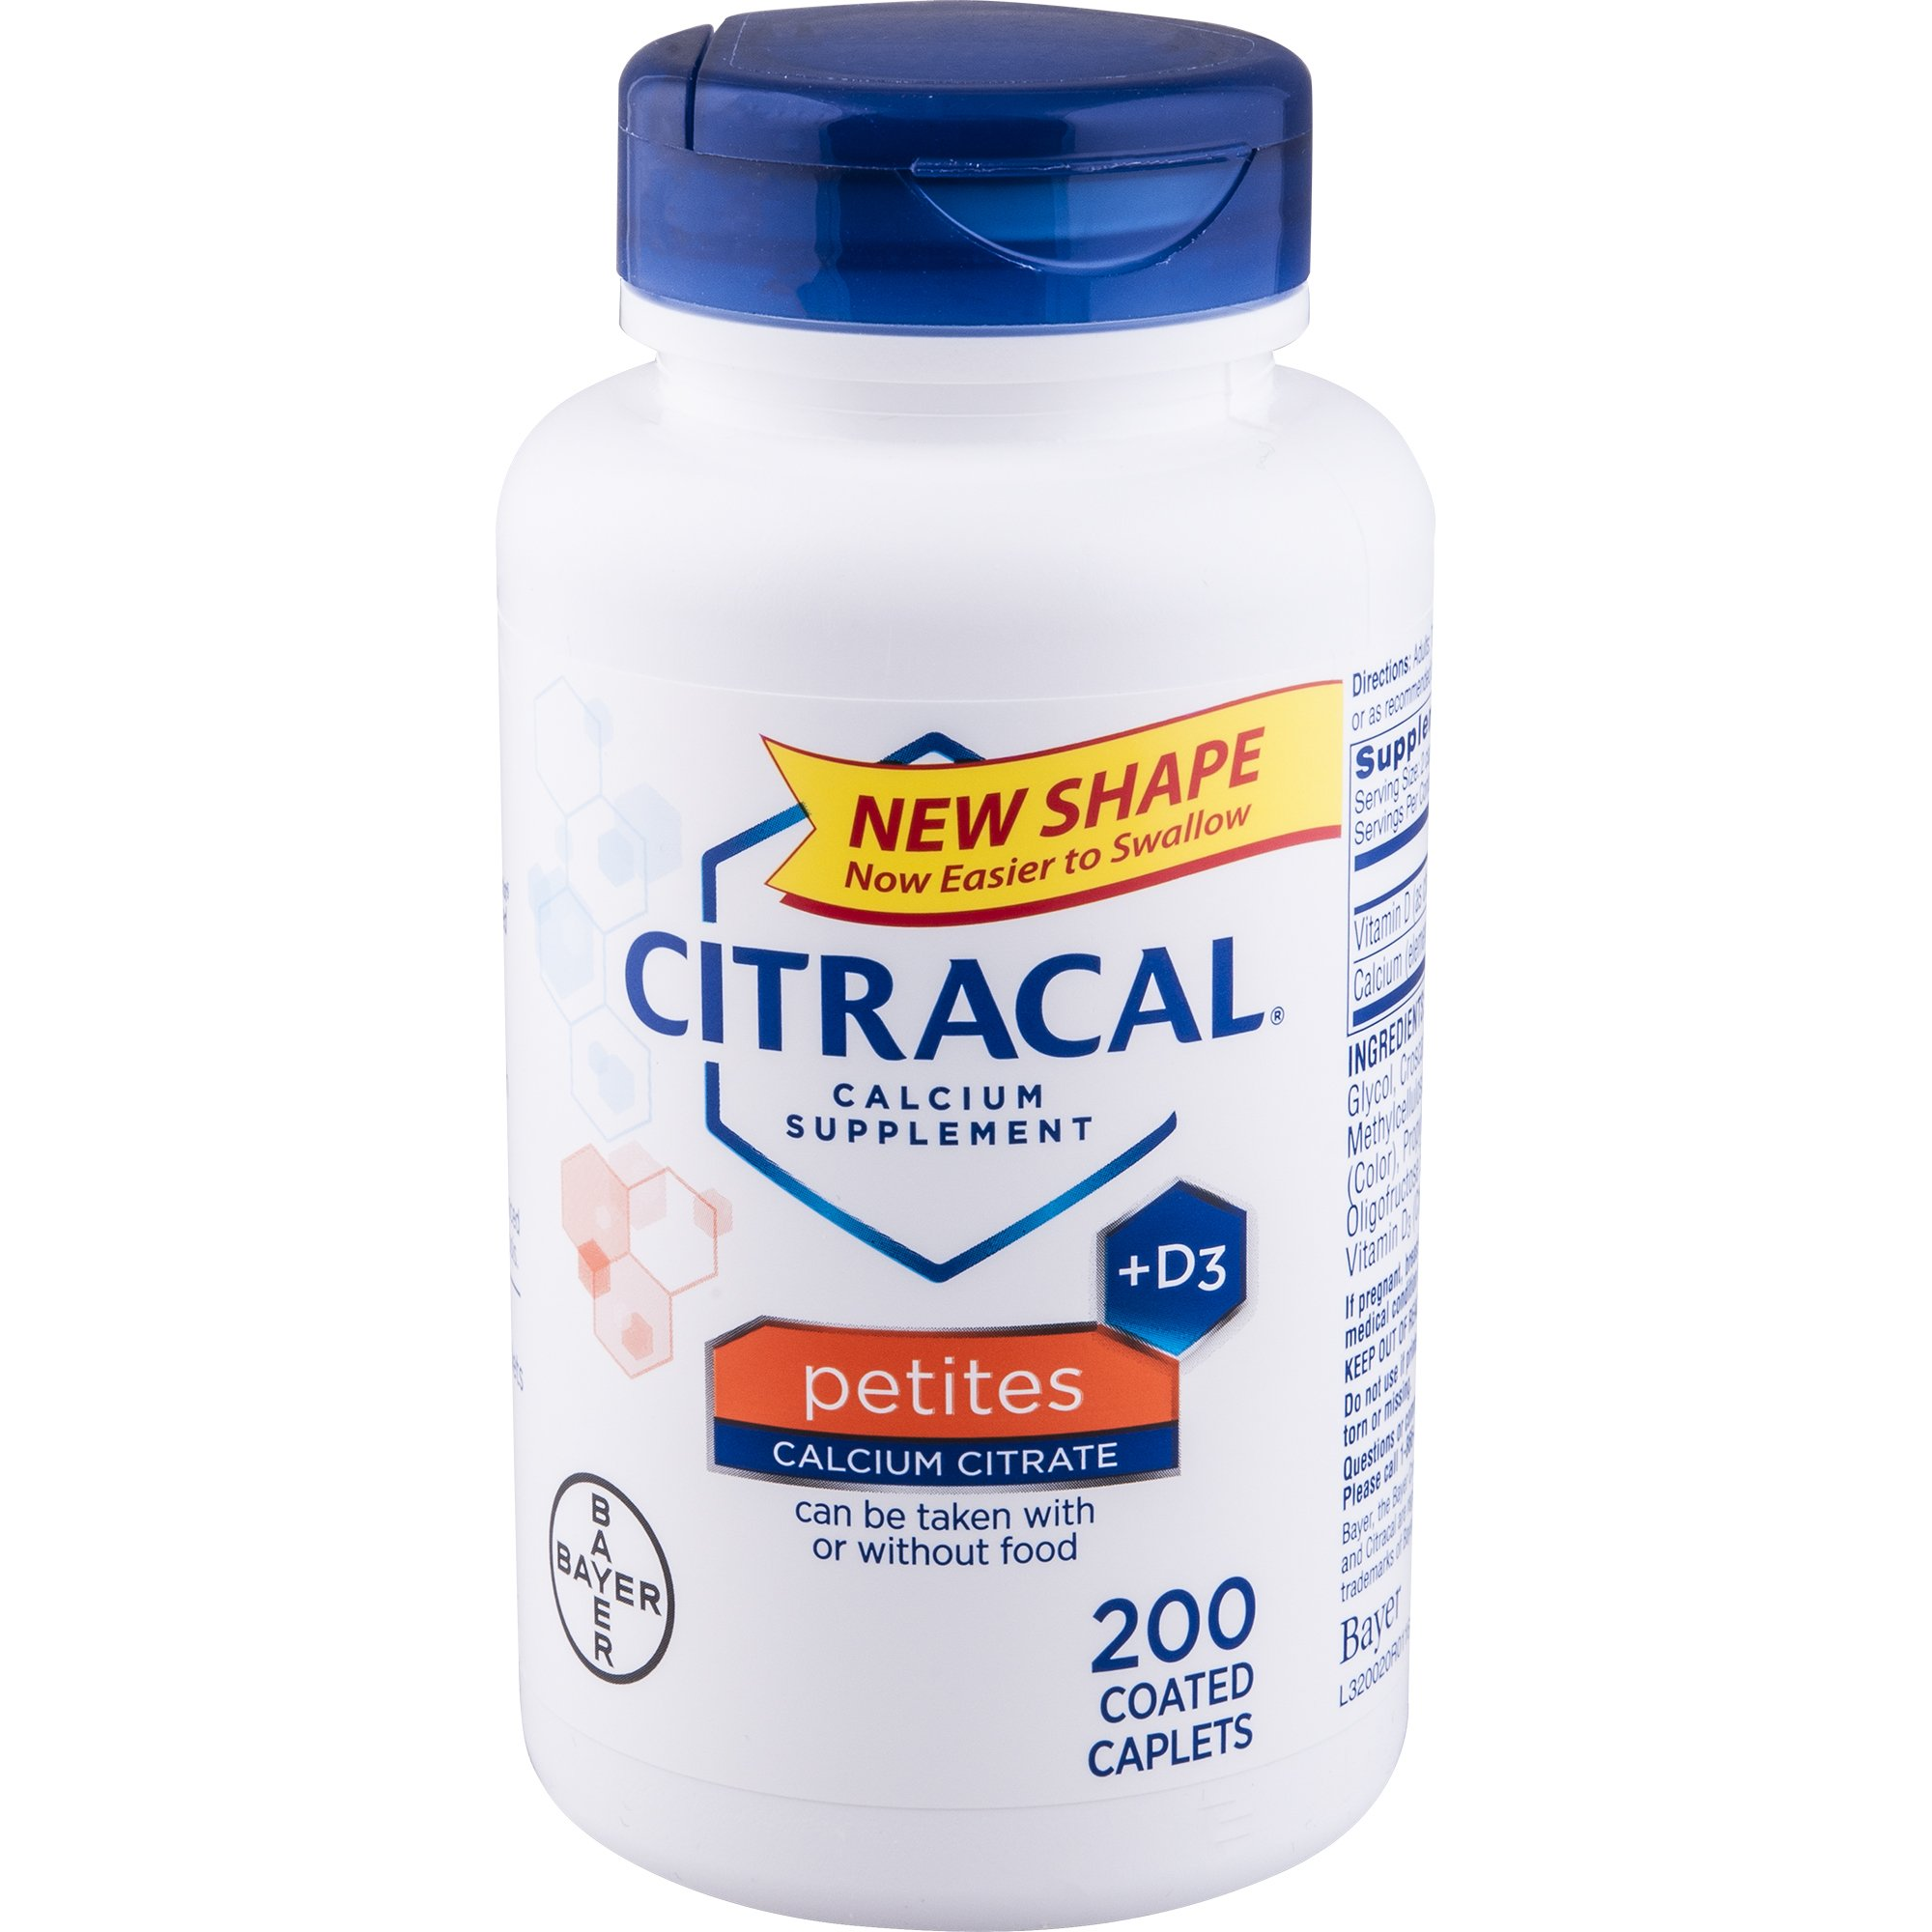 Citracal Petites, Highly Soluble, Easily Digested, 400 mg Calcium Citrate With 500 IU